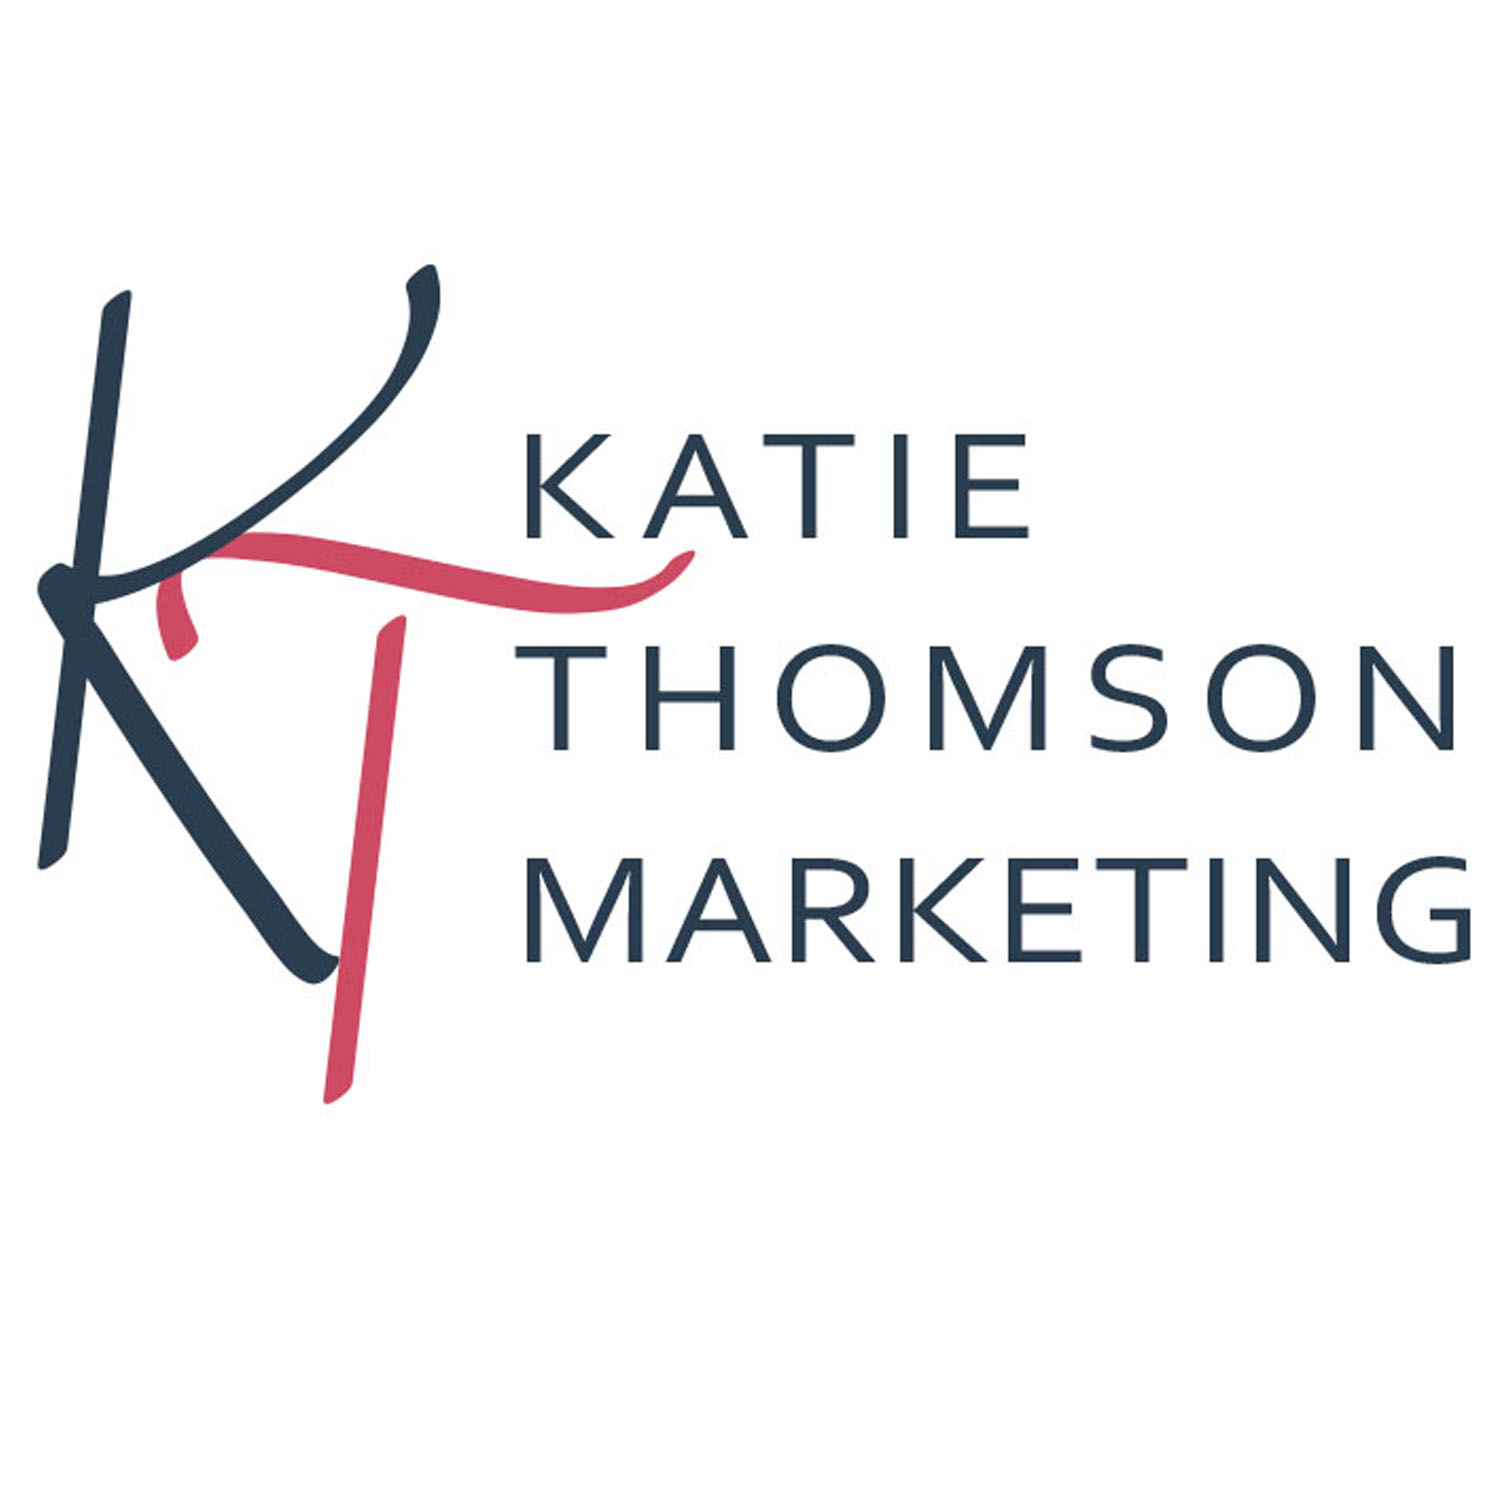 Katie Thomson Marketing profile image